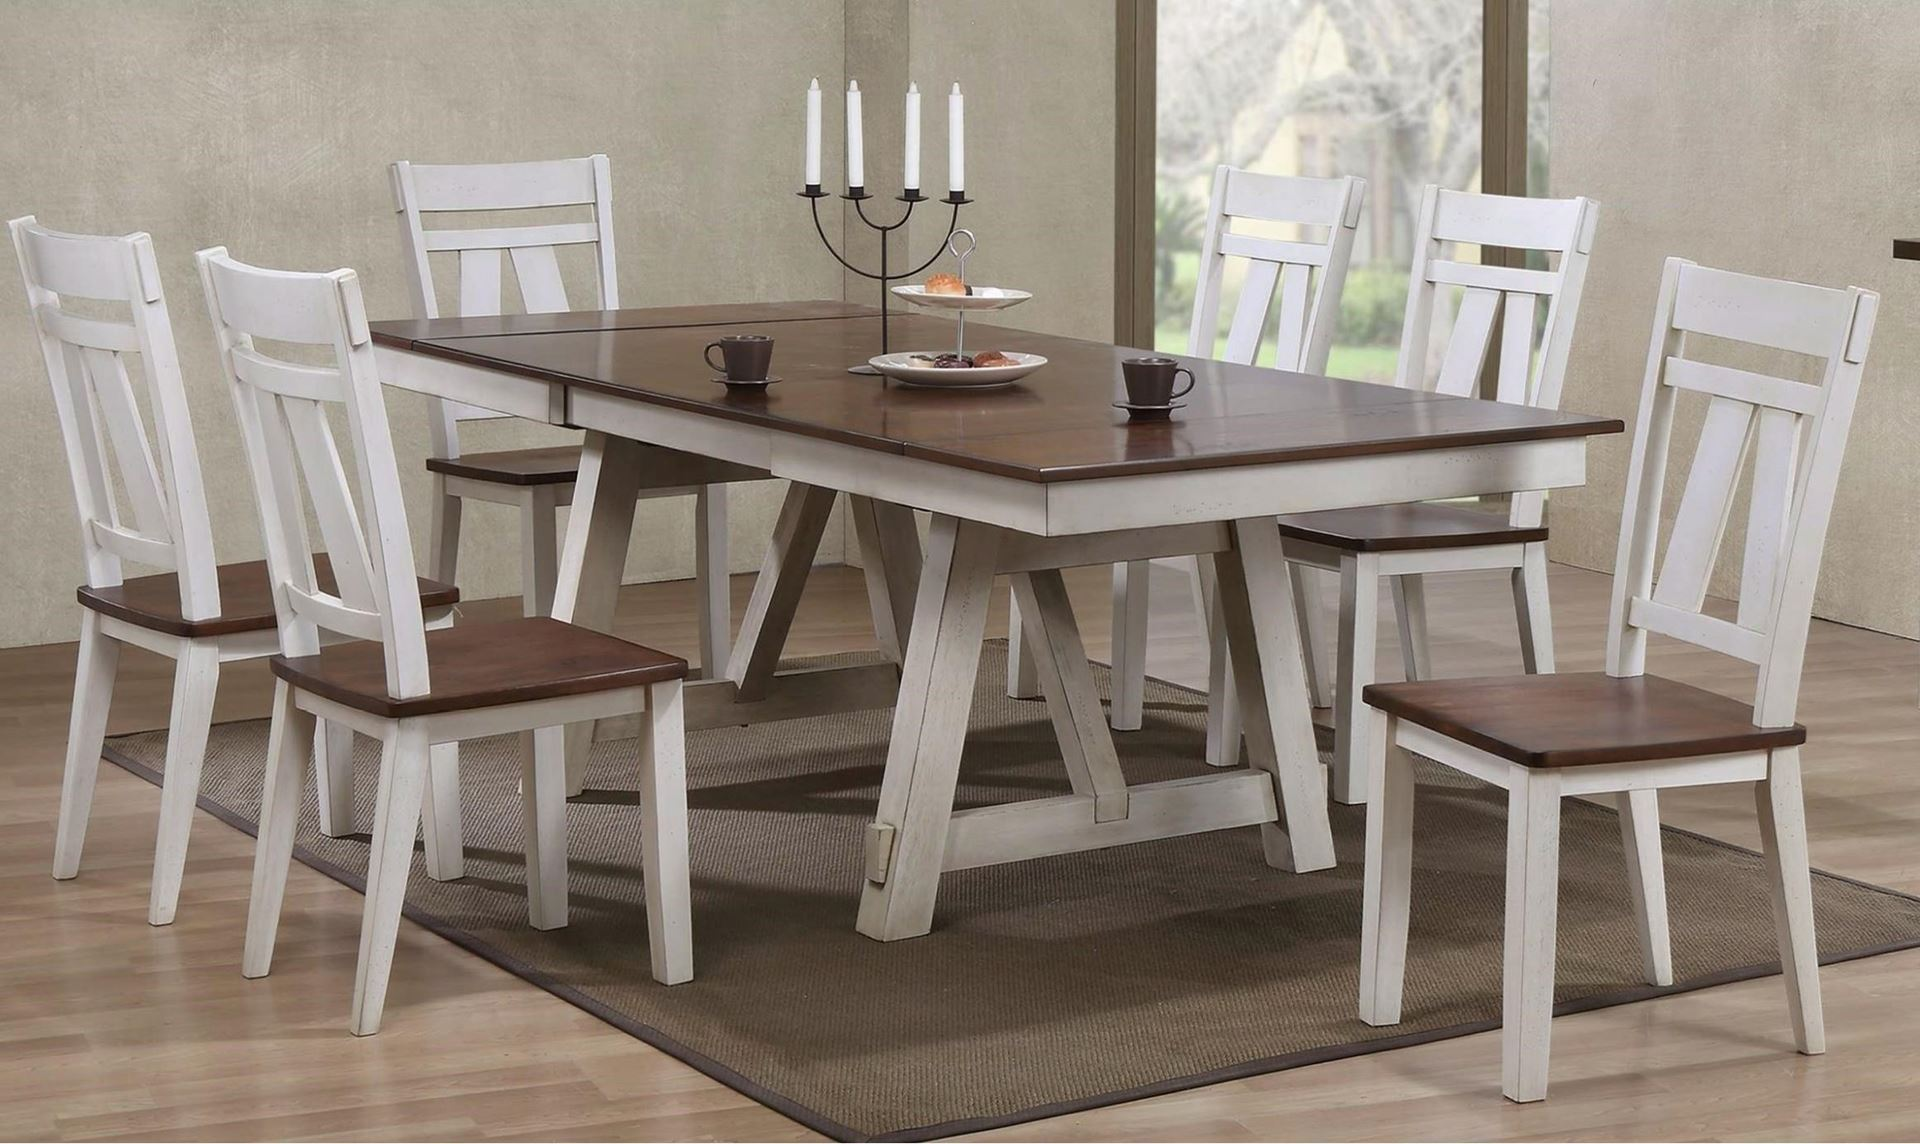 Some farmhouse dining table ideas